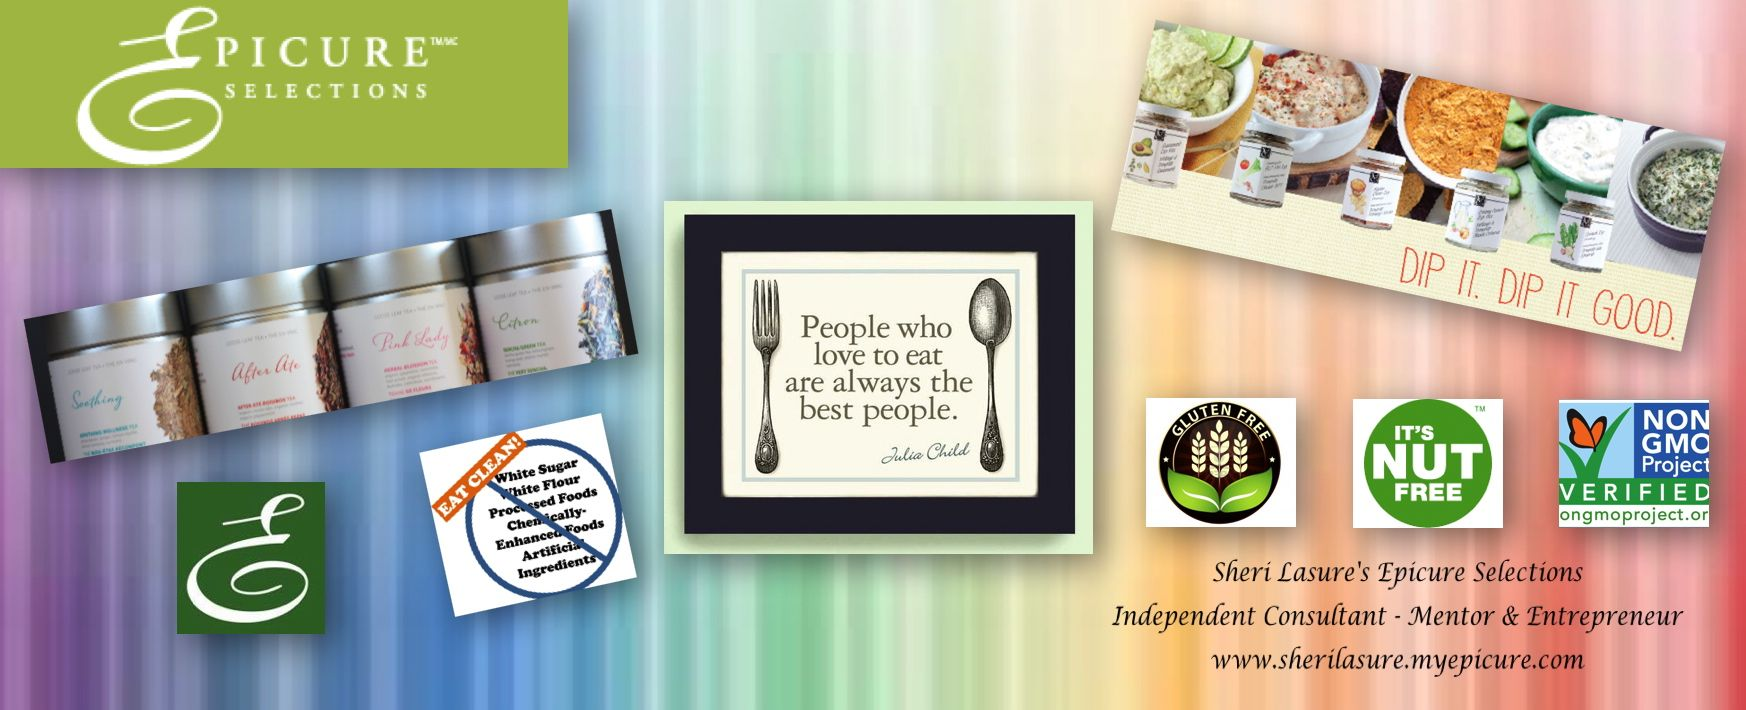 Be Your Own Success With Epicure Selections  Are You